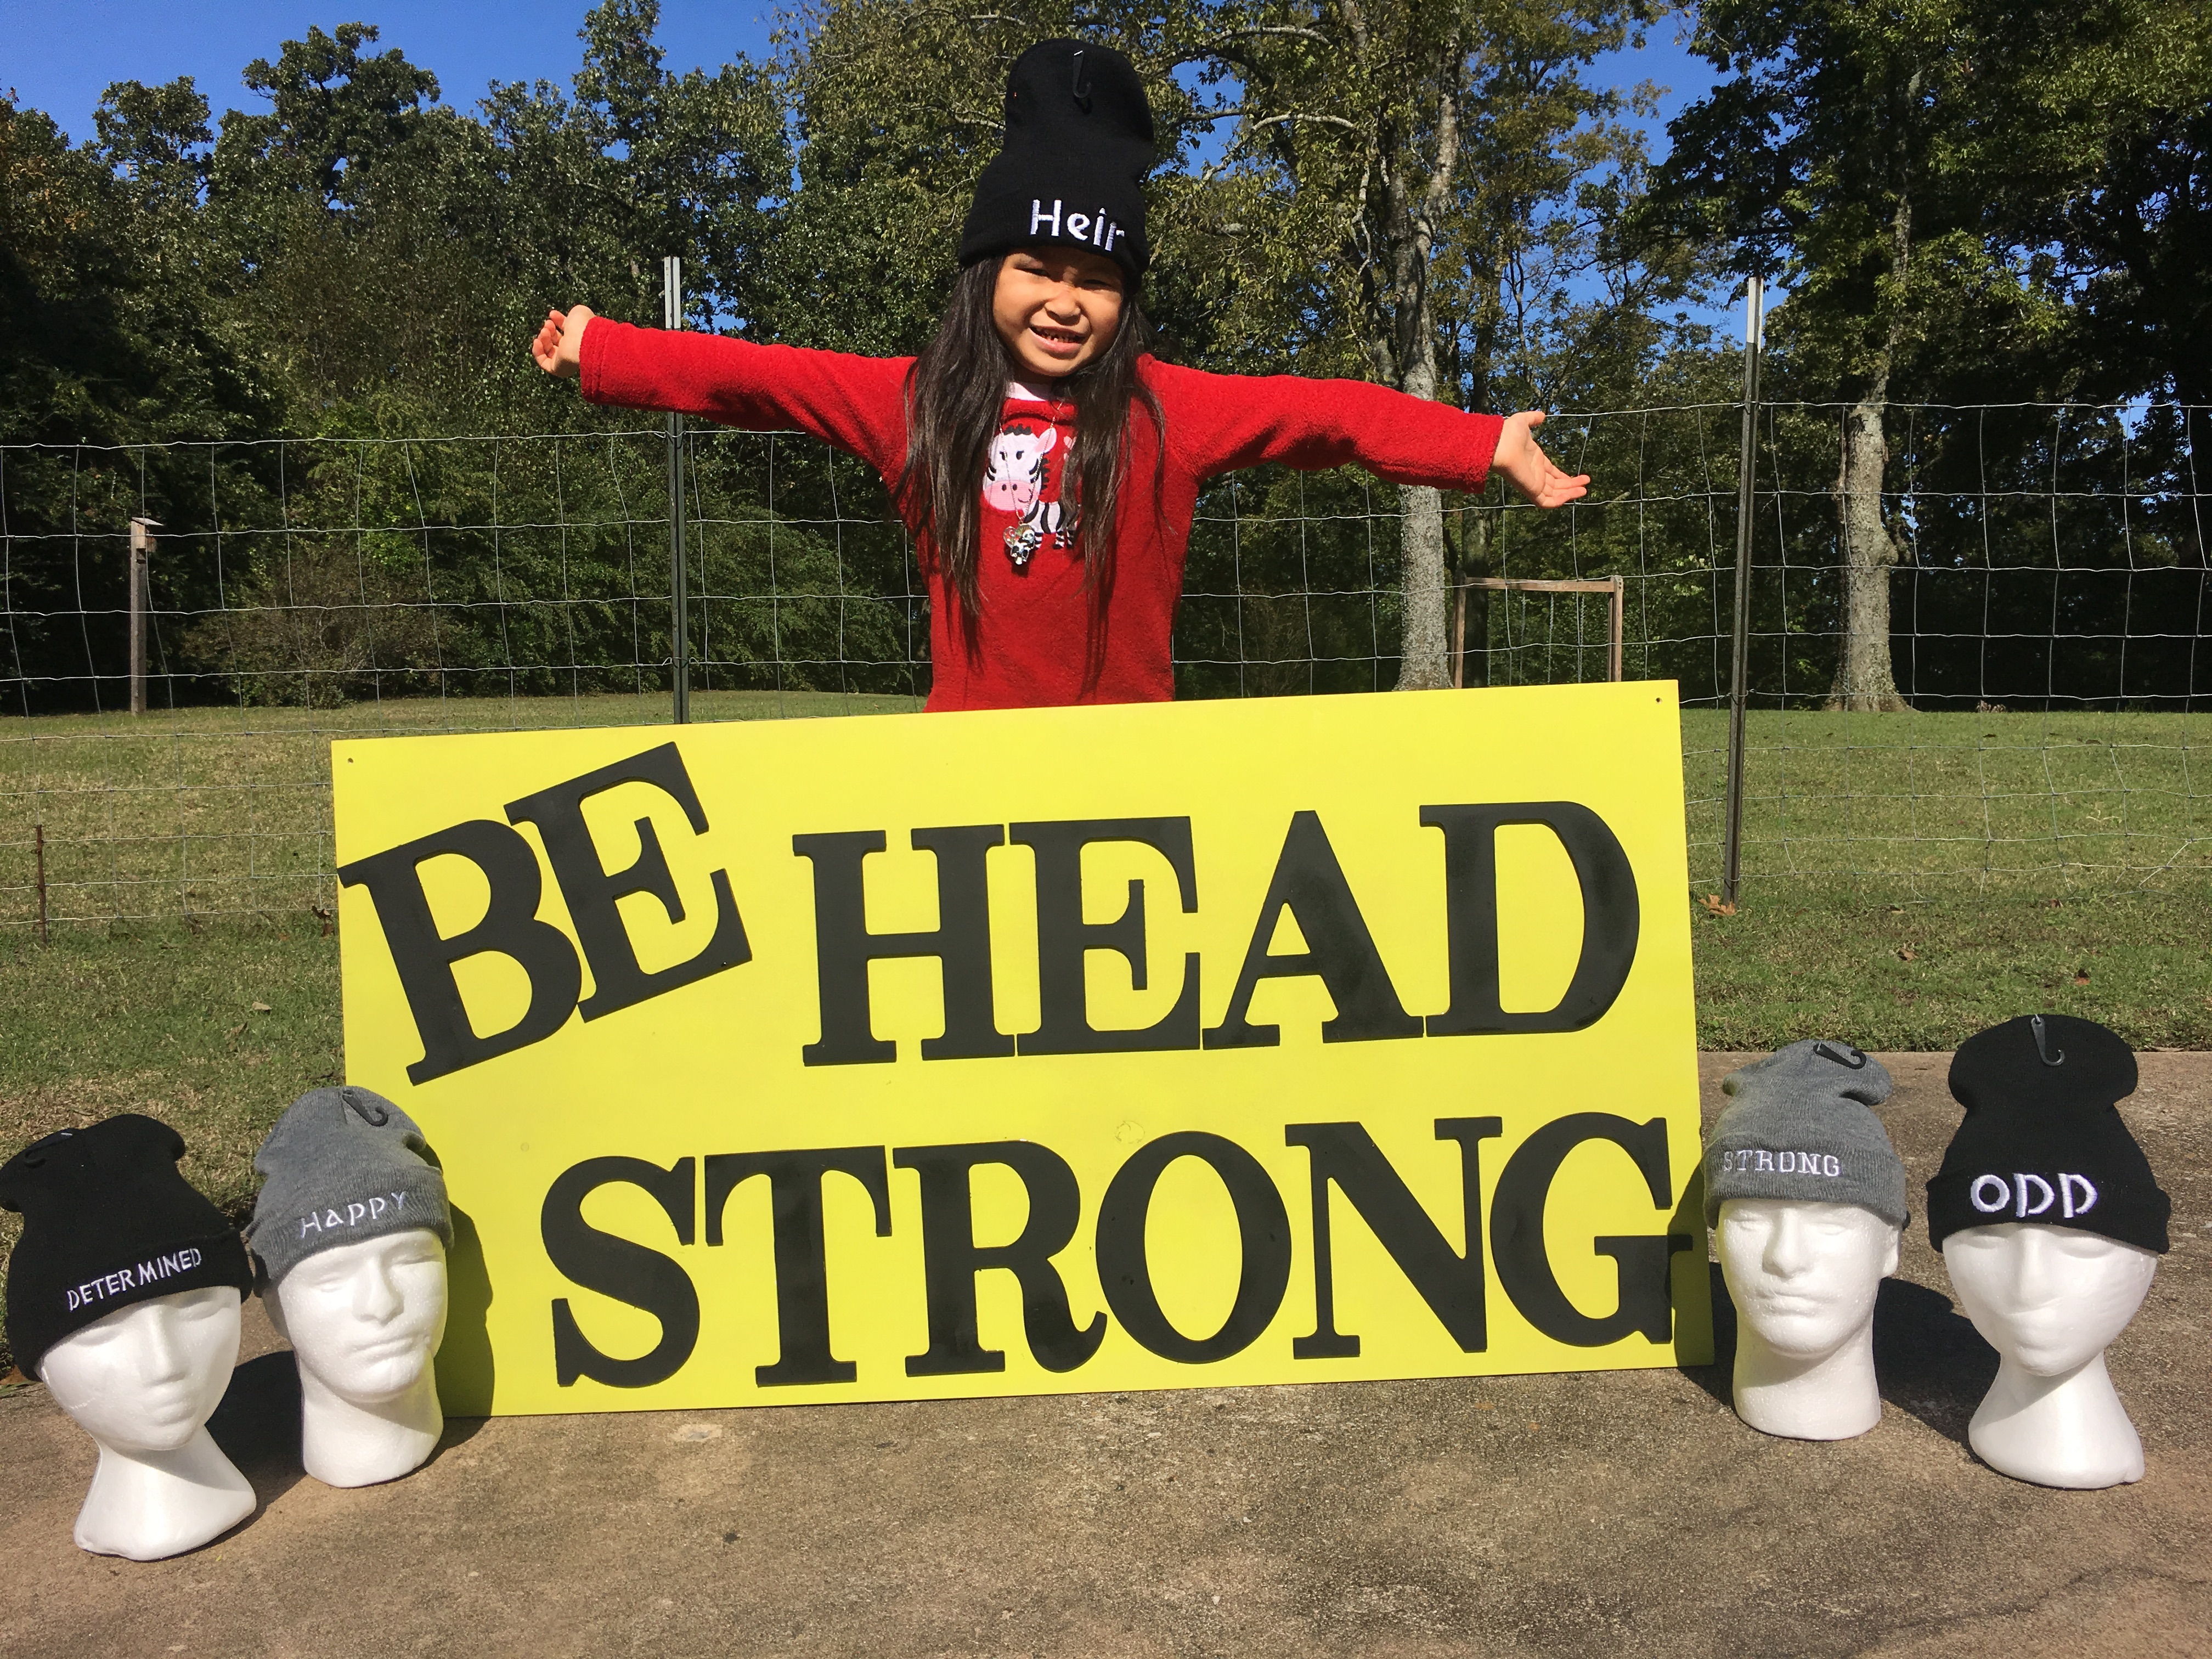 Be Head Strong